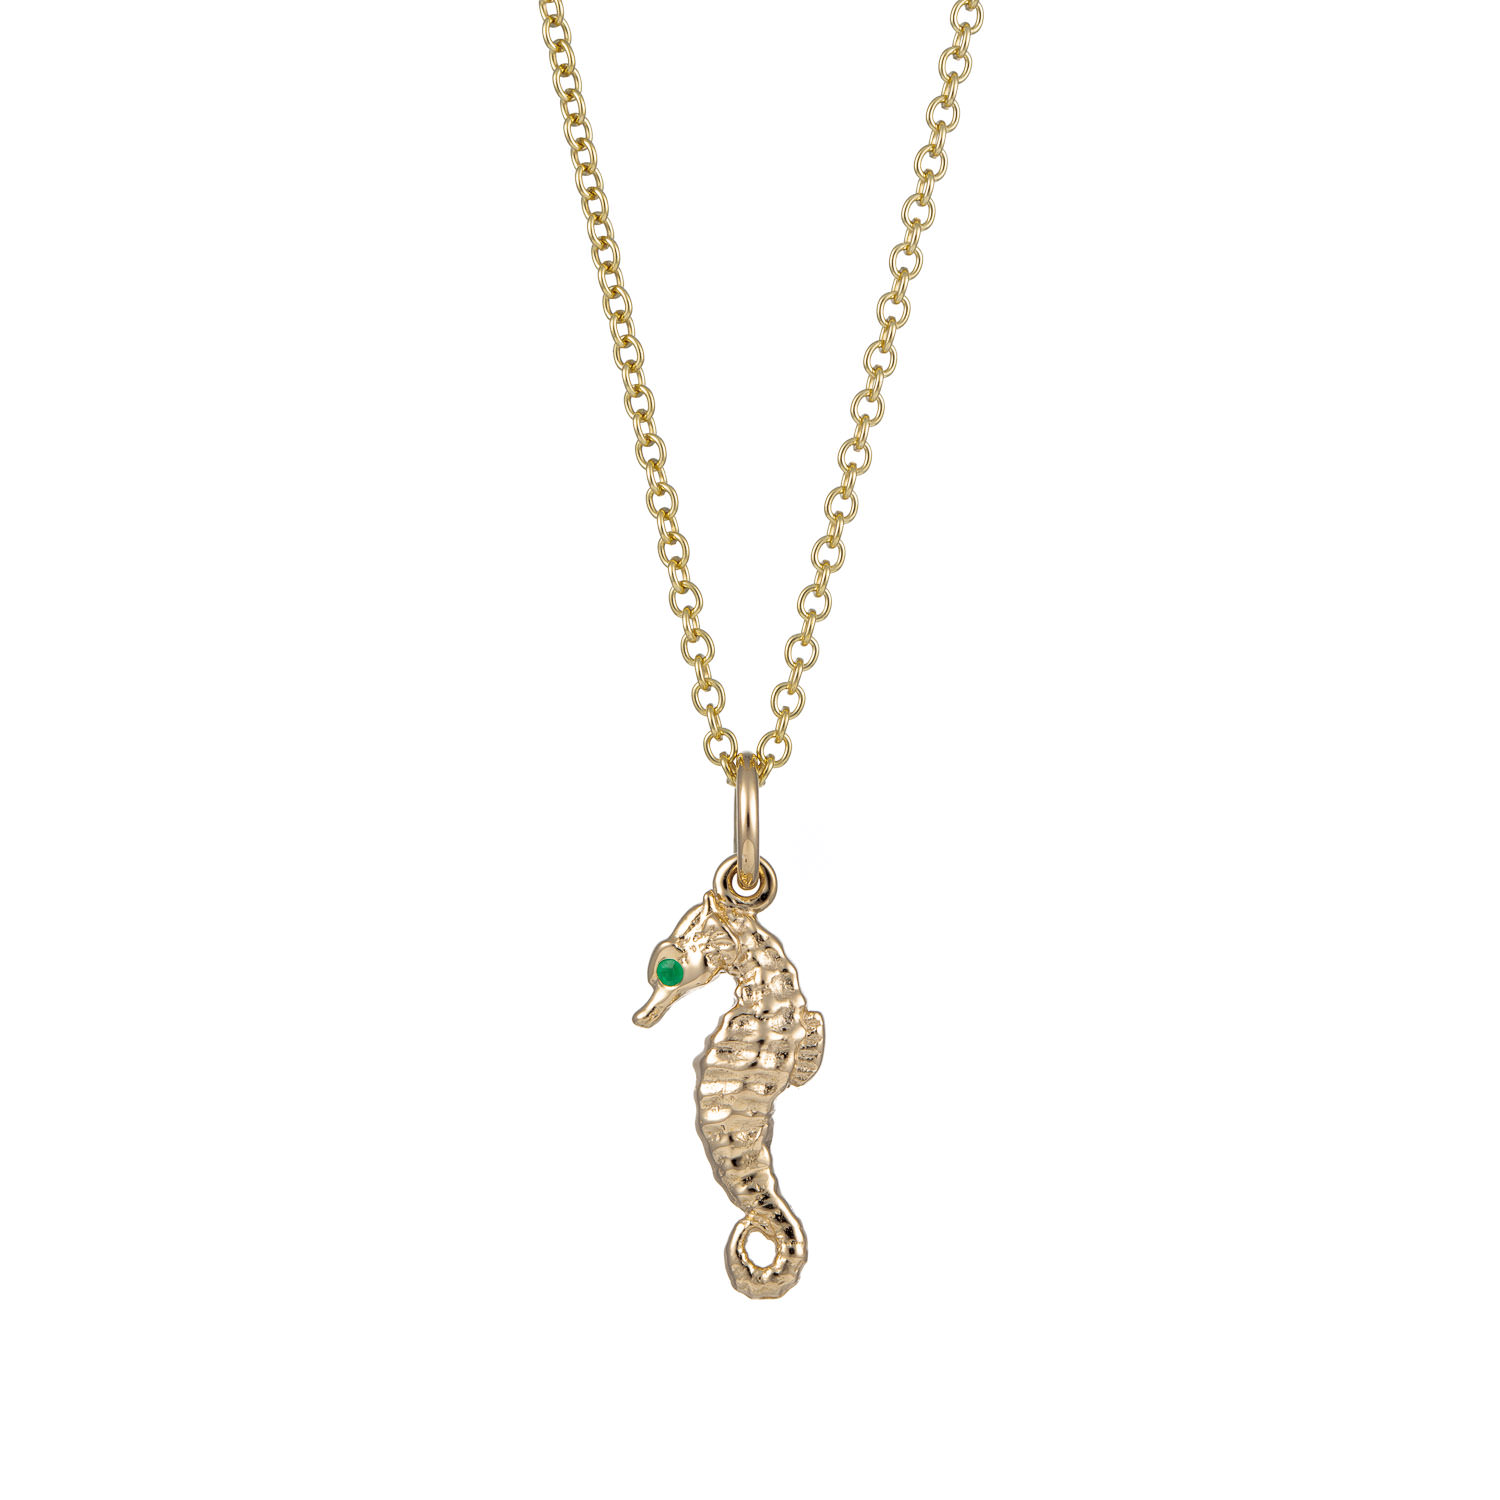 065cf2af6 Personalised 9 Carat Gold and Emerald Seahorse Necklace